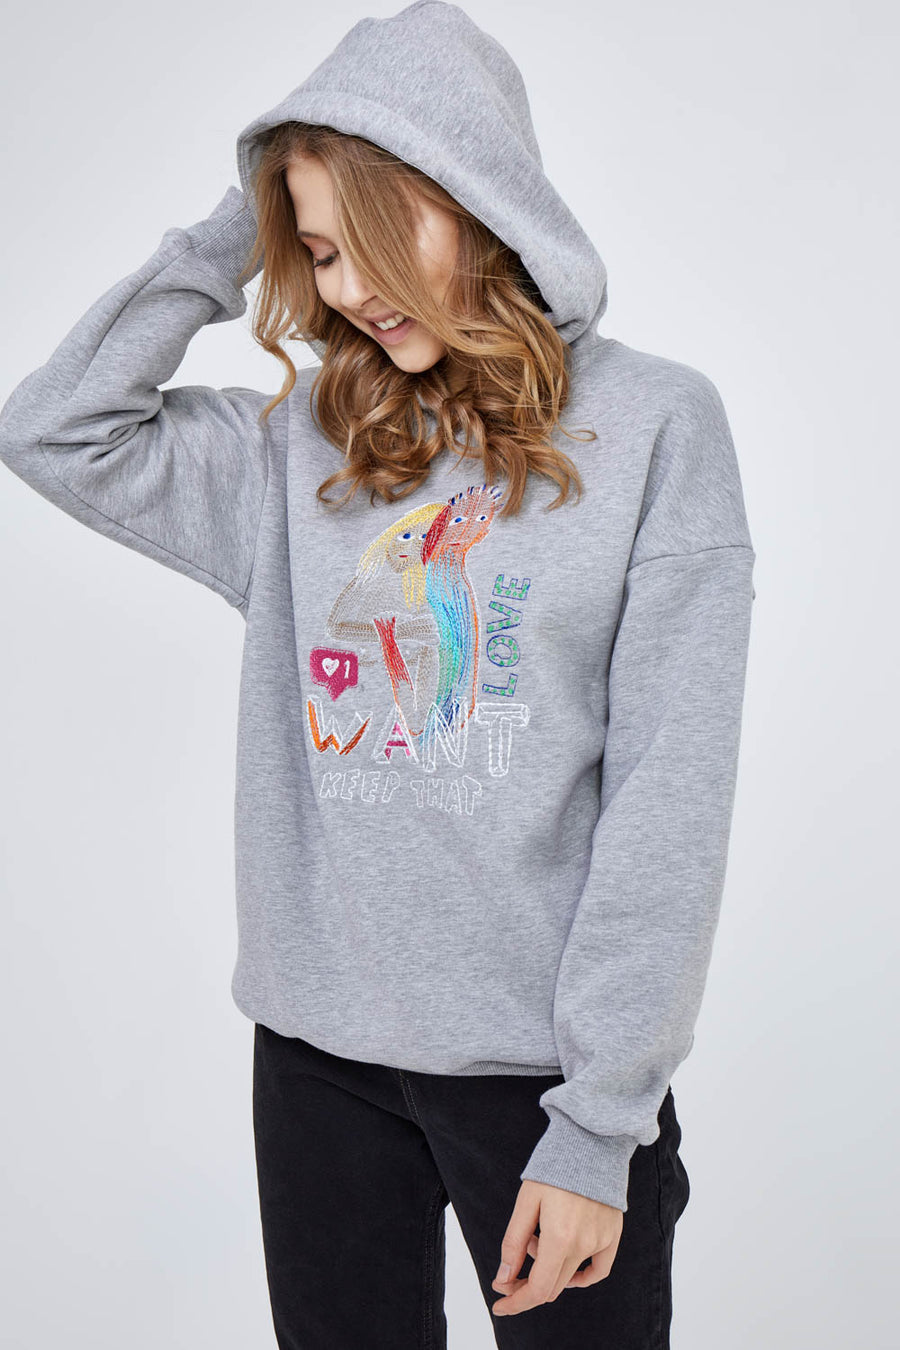 Gray Heather Want (Keep) That Love Hoodie